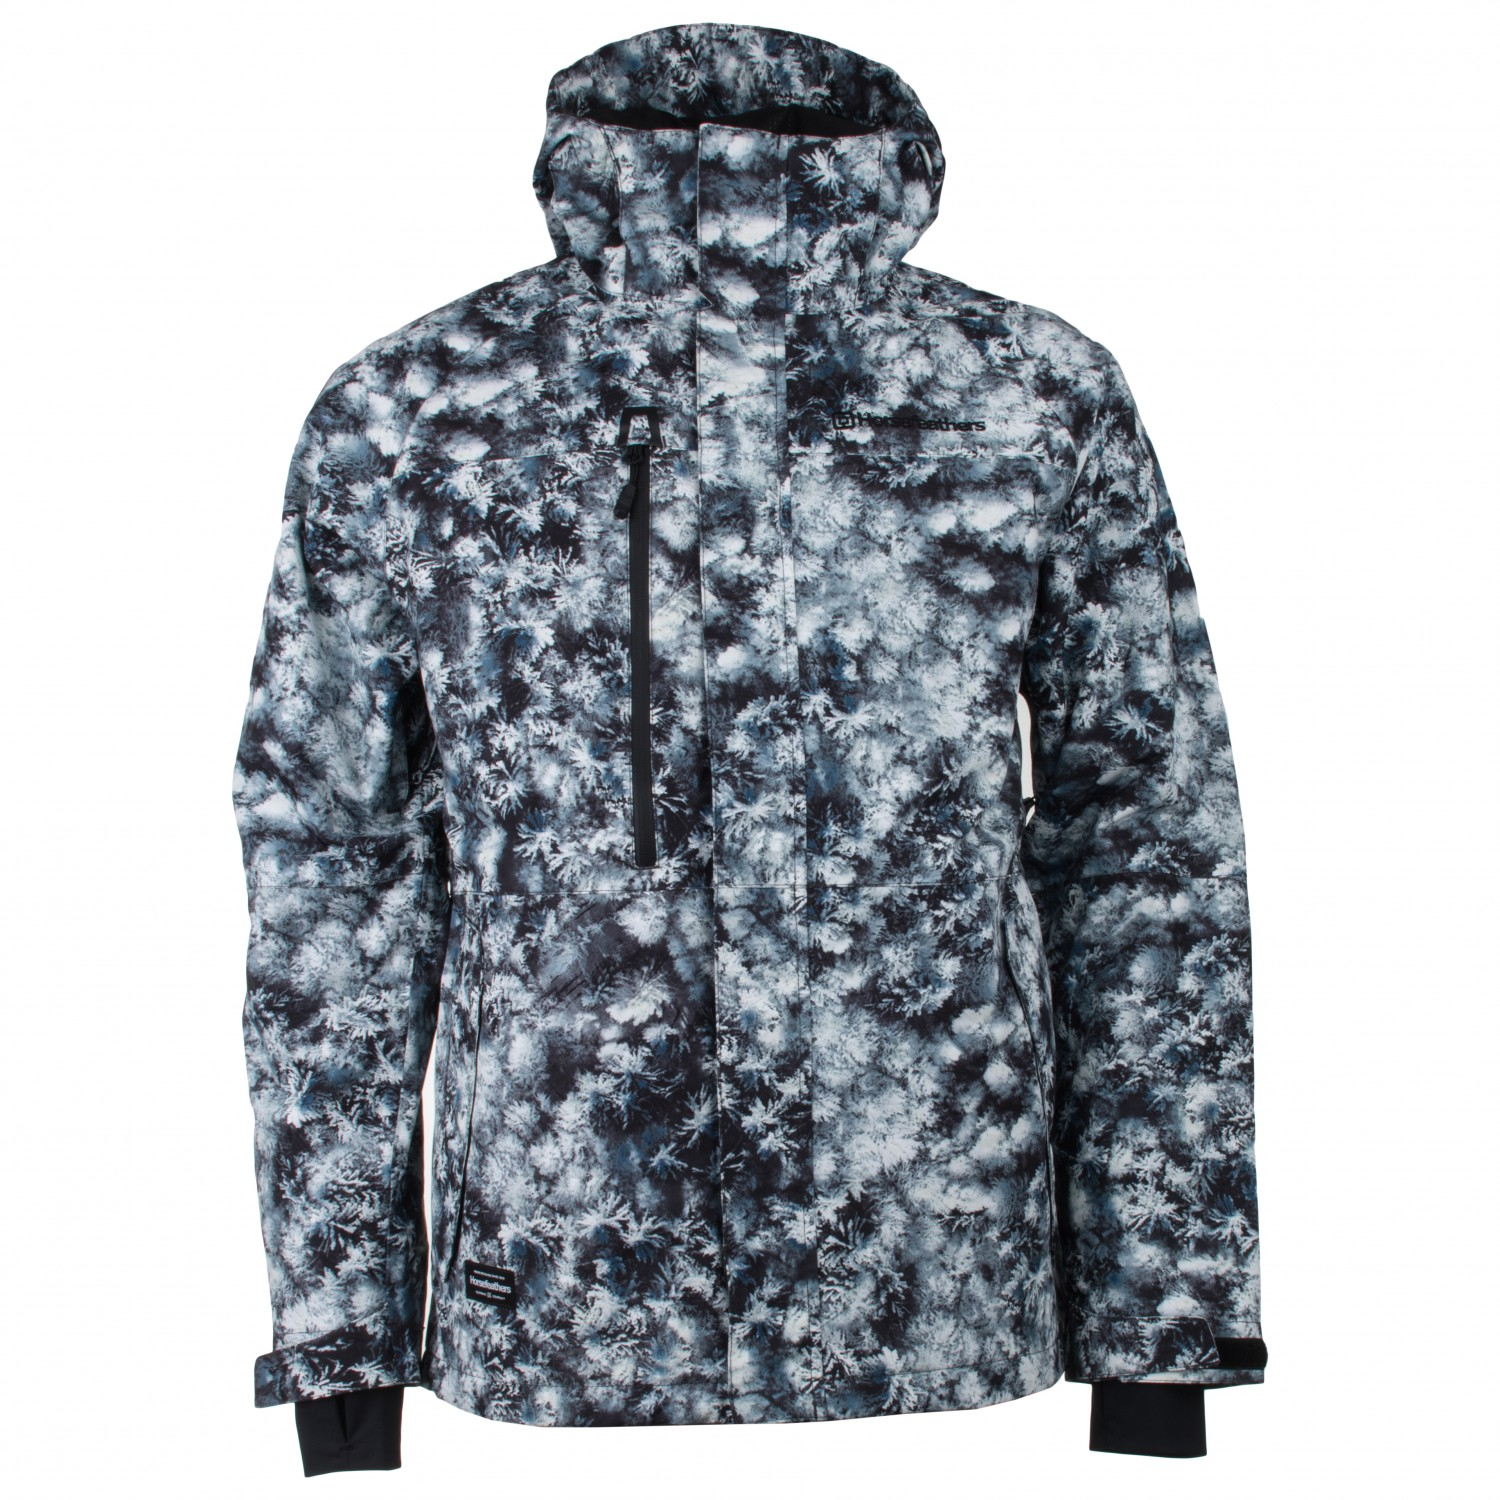 Prowler Jacket Prowler Drone View Horsefeathers Jacket Drone rq1grp